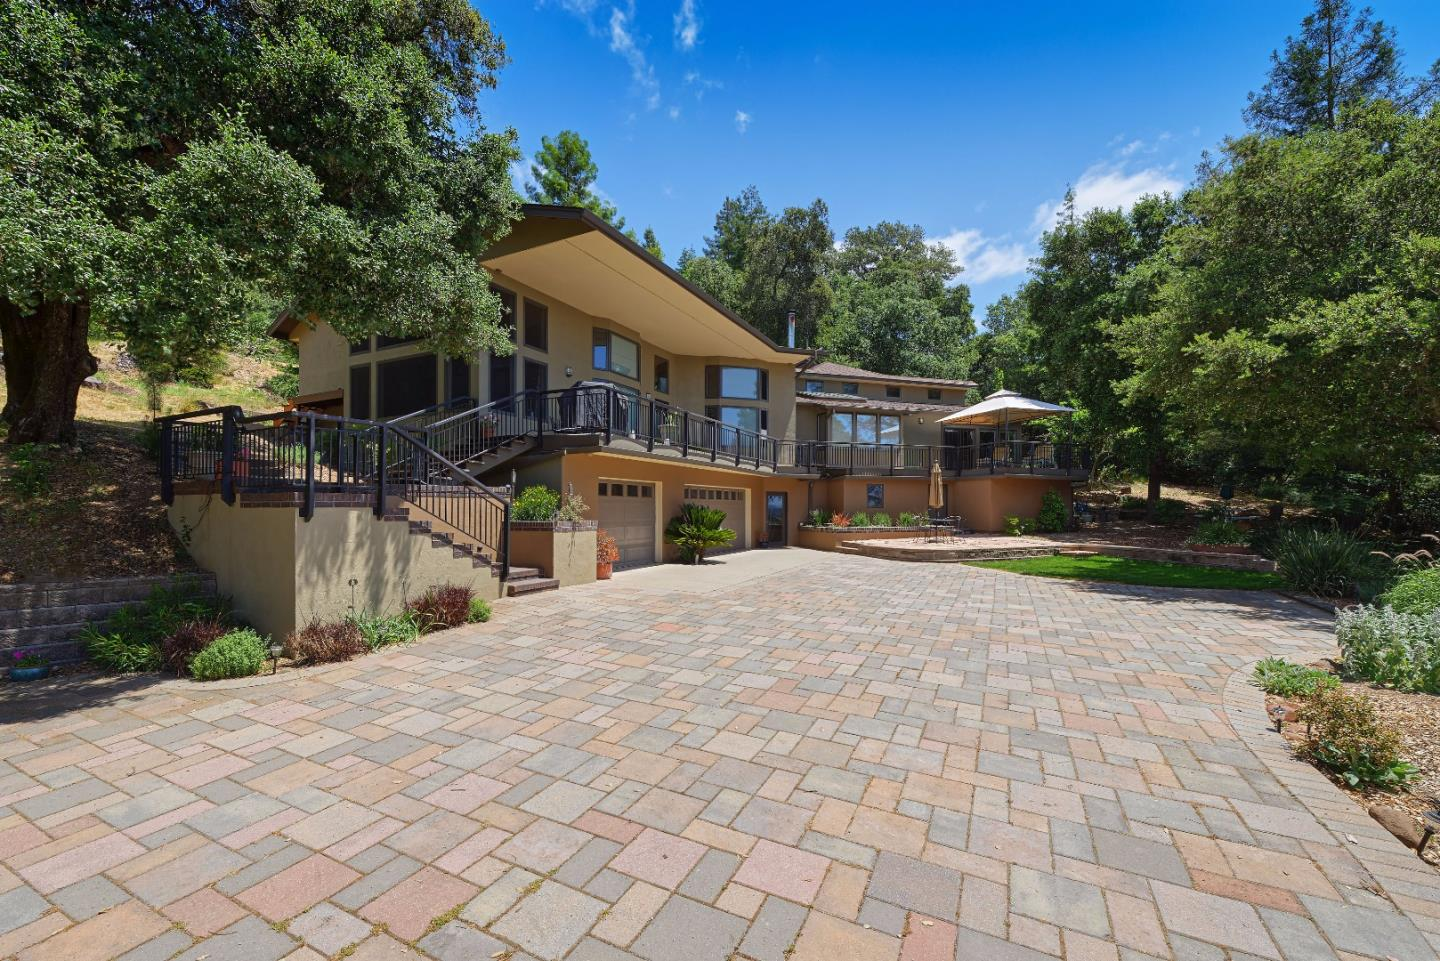 Additional photo for property listing at 17333 Old Ranch Road  Los Gatos, Kalifornien 95033 Vereinigte Staaten